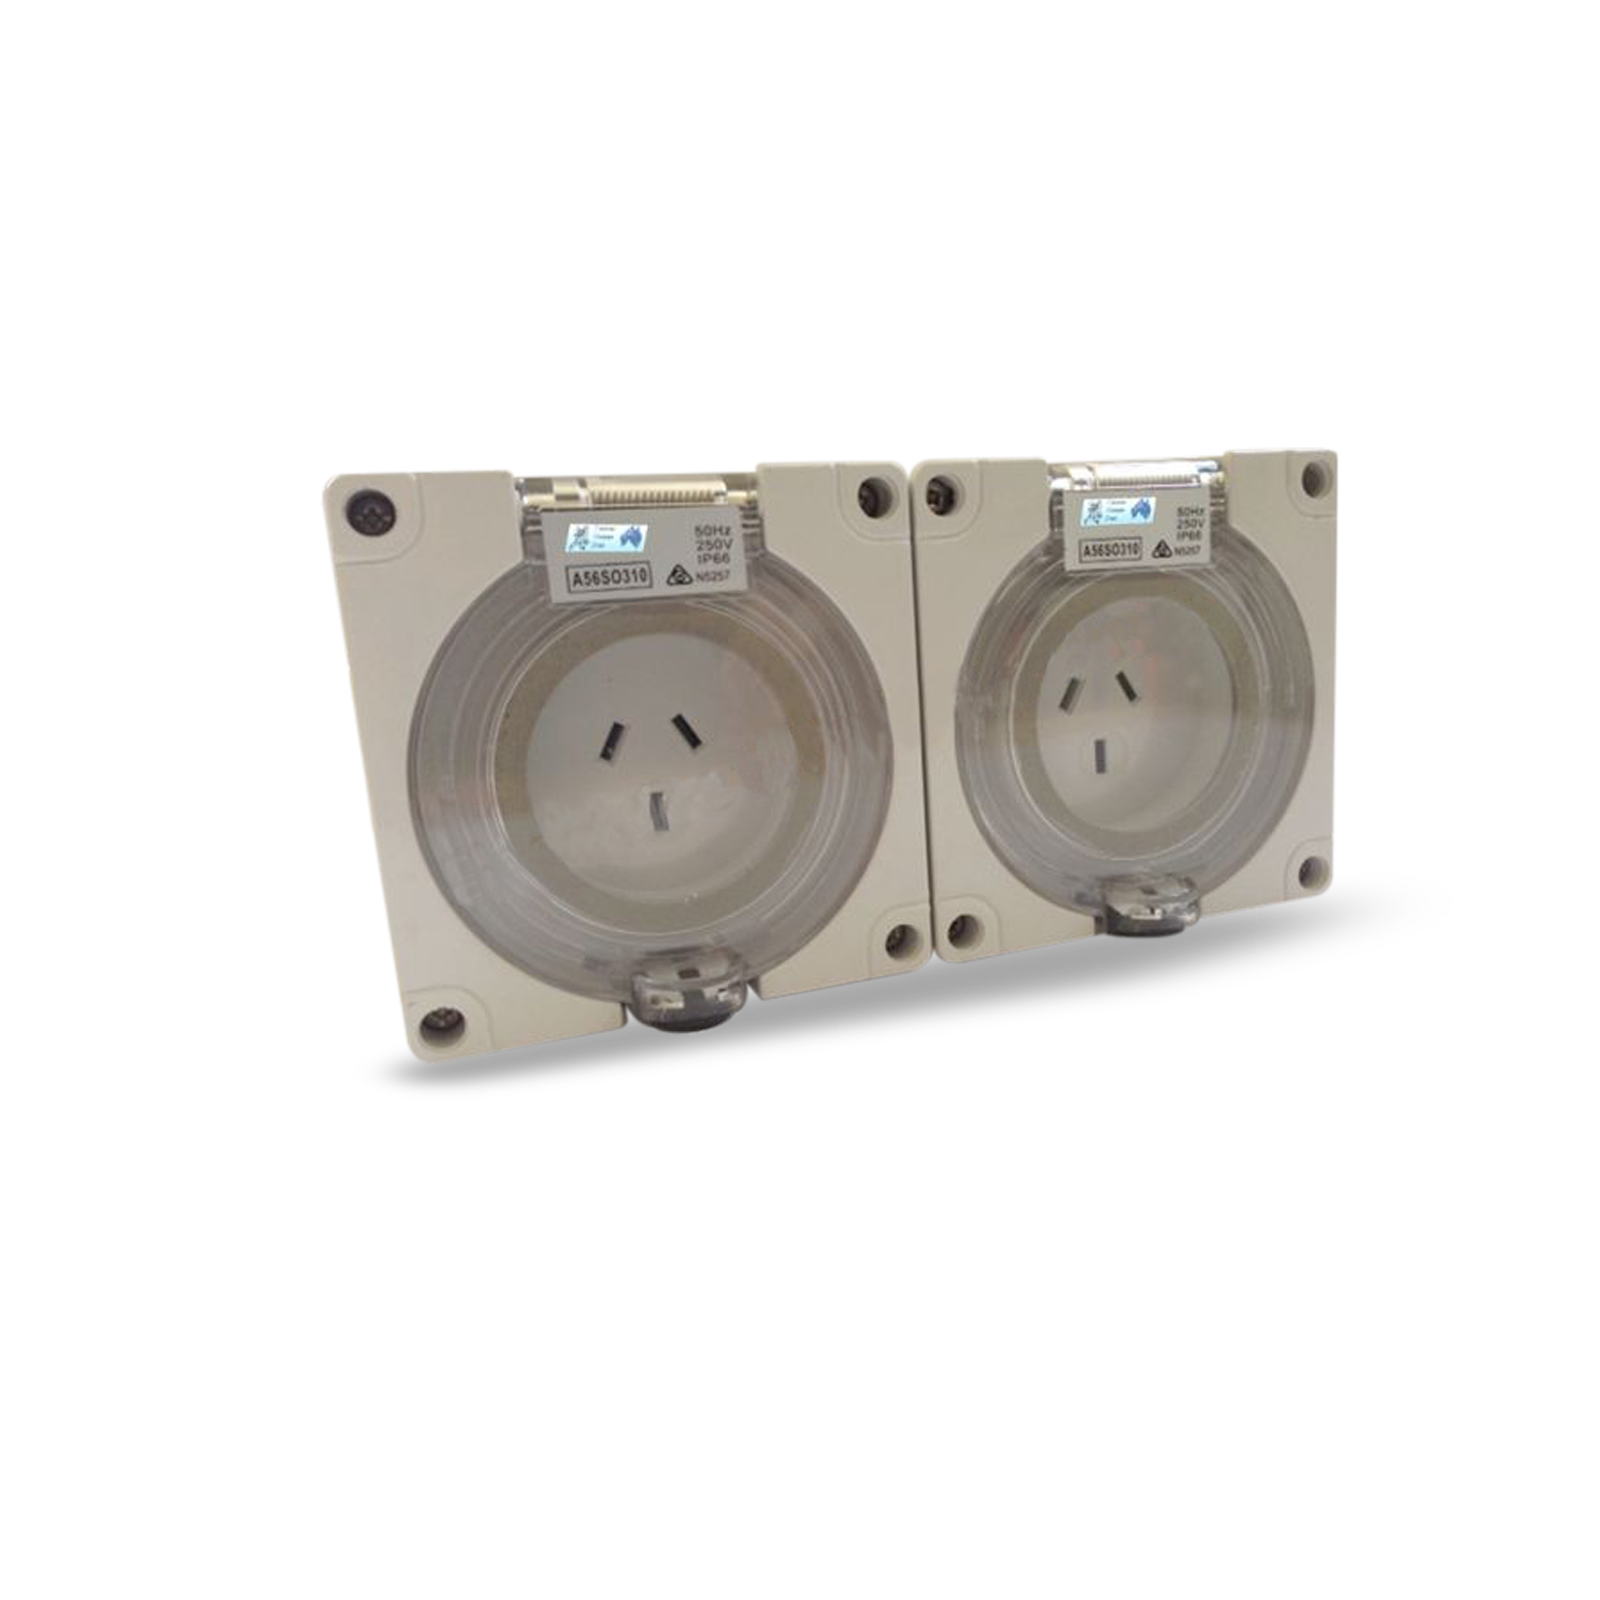 2 X 10 Amp 3 Pin Single Phase Outlet Socket Ip66